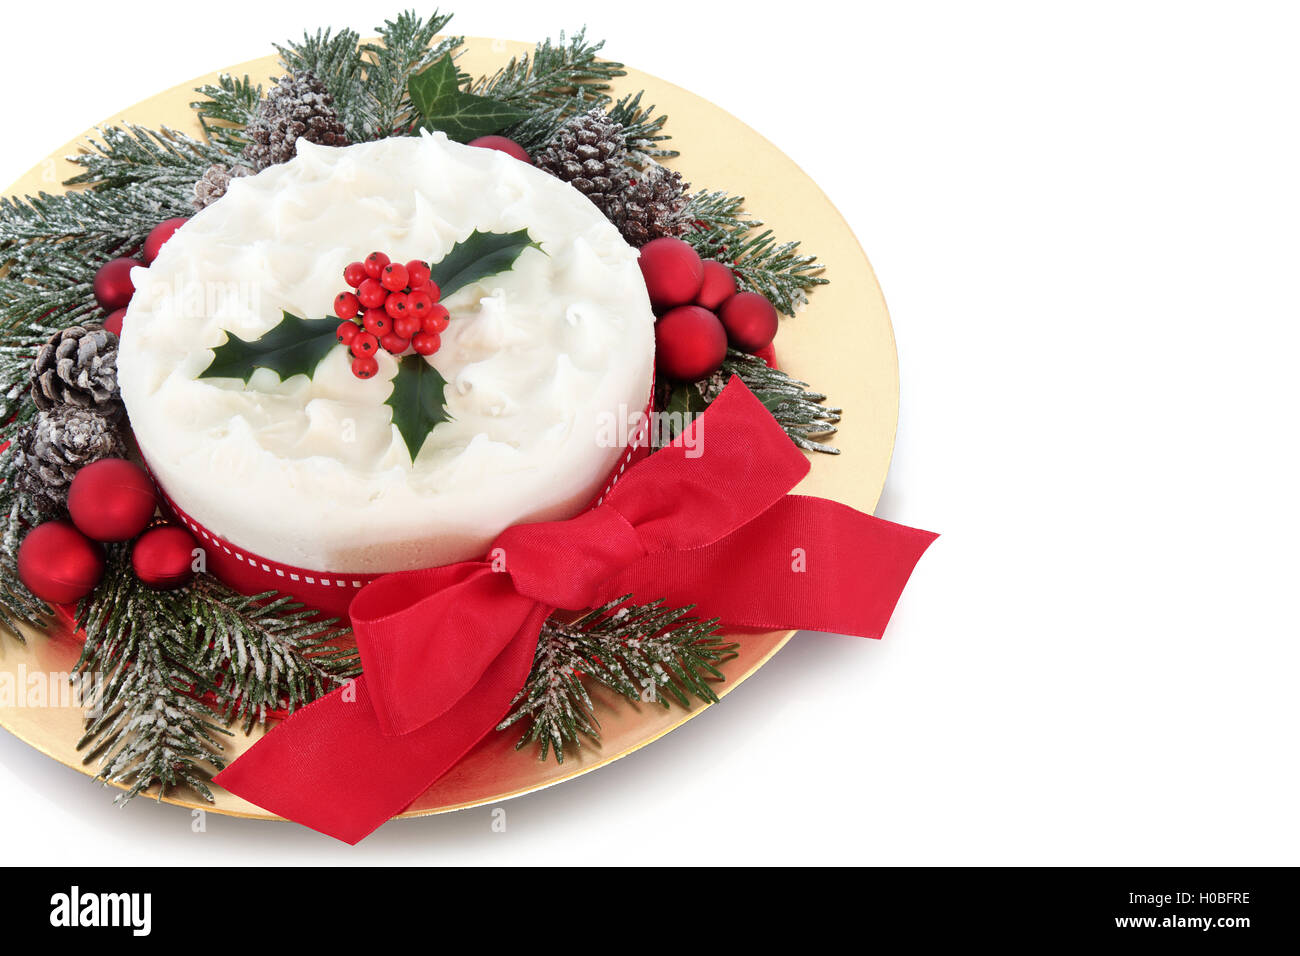 Why is holly a traditional christmas decoration - Stock Photo Traditional Christmas Cake With Red Bauble Decorations Bow Holly And Snow Covered Winter Greenery On A Gold Plate Over White